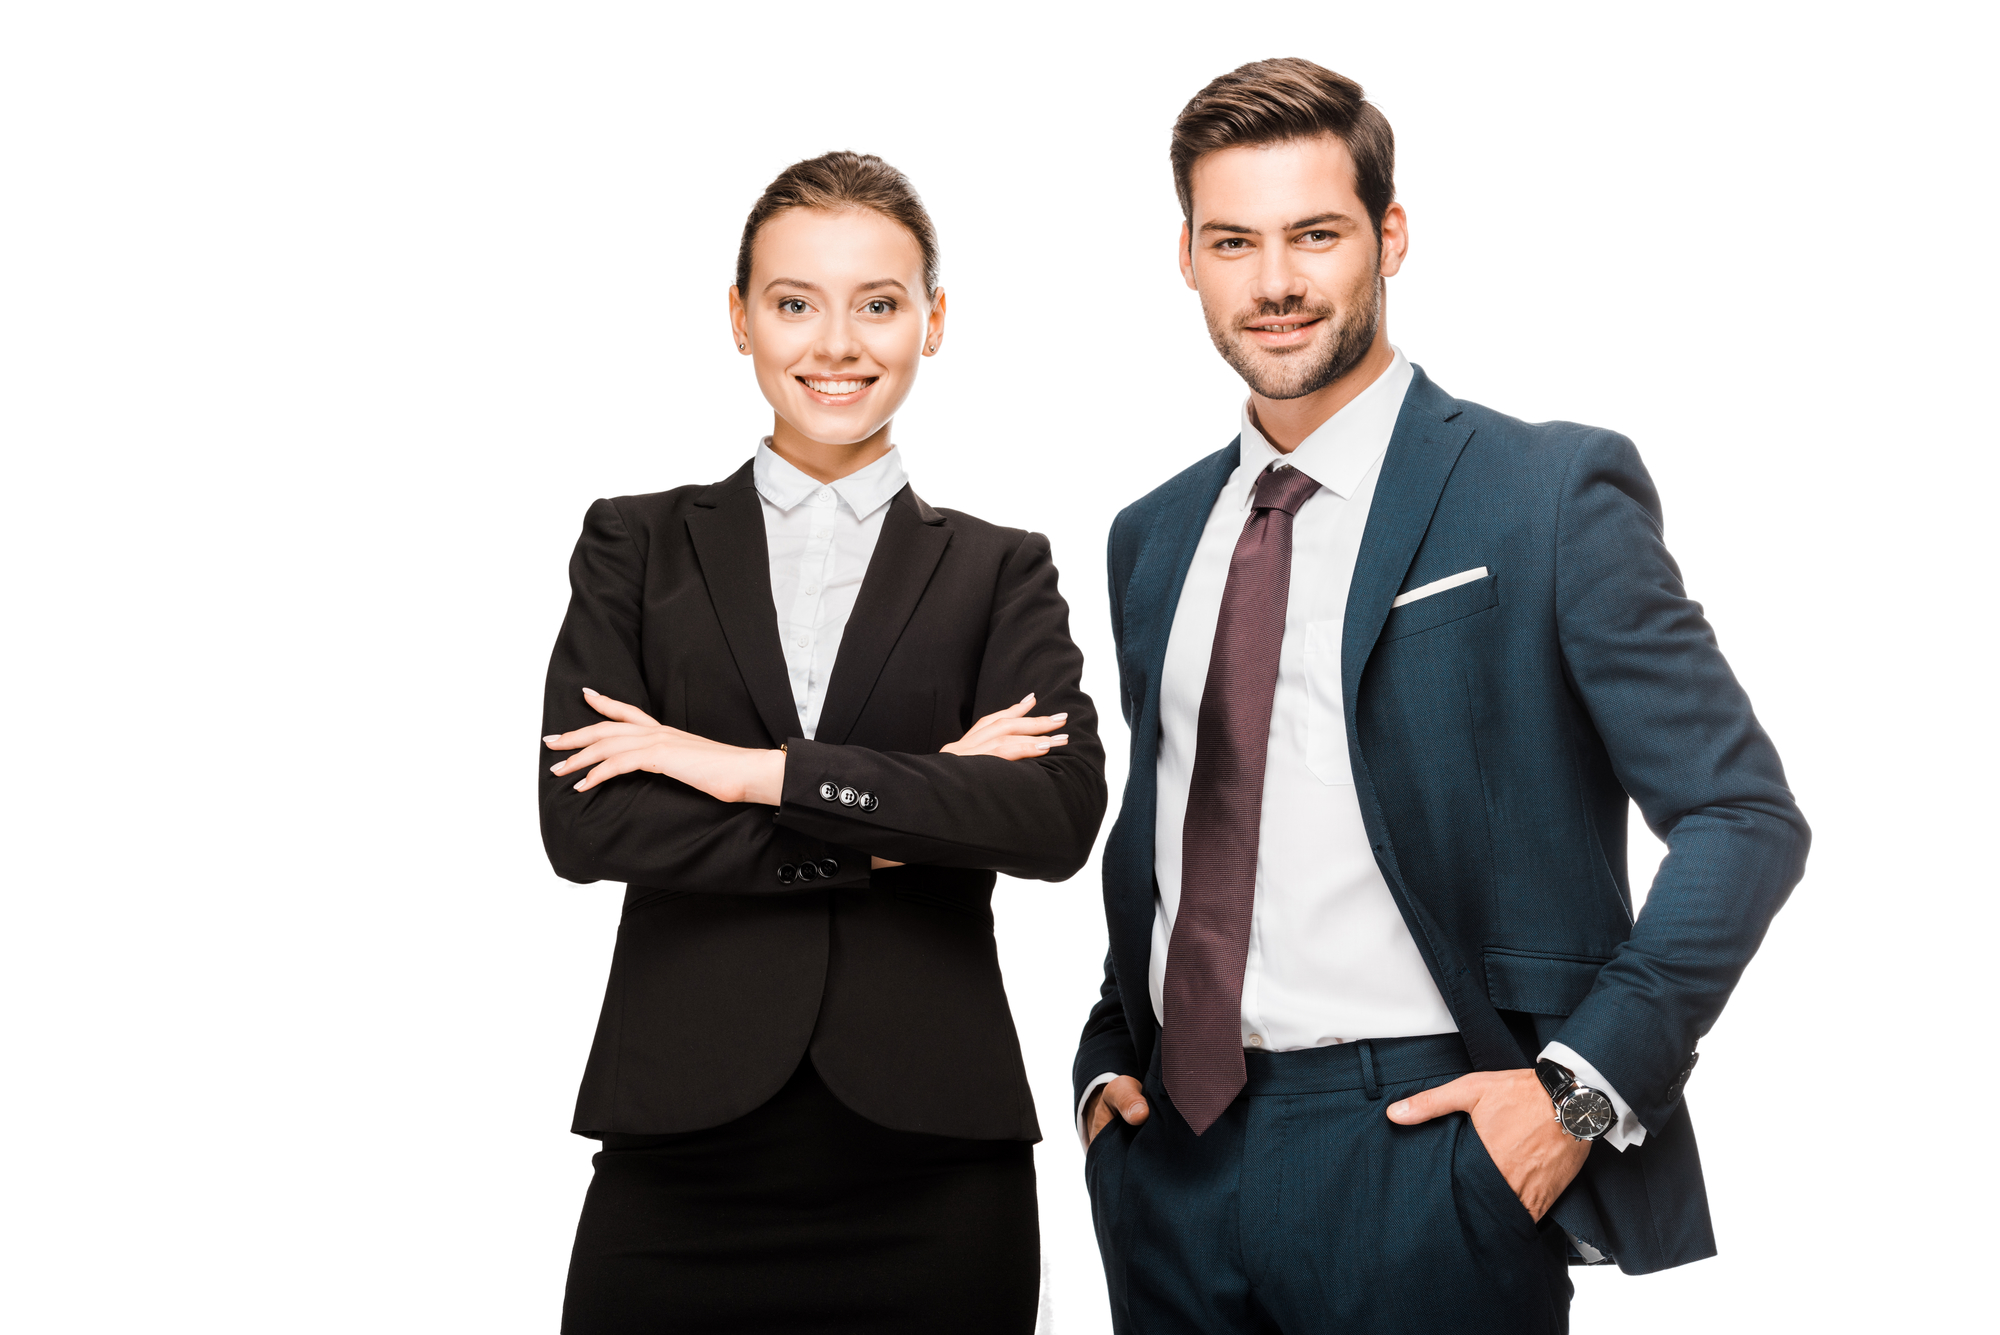 Man and woman at work smiling at camera and dressed in corporate clothes